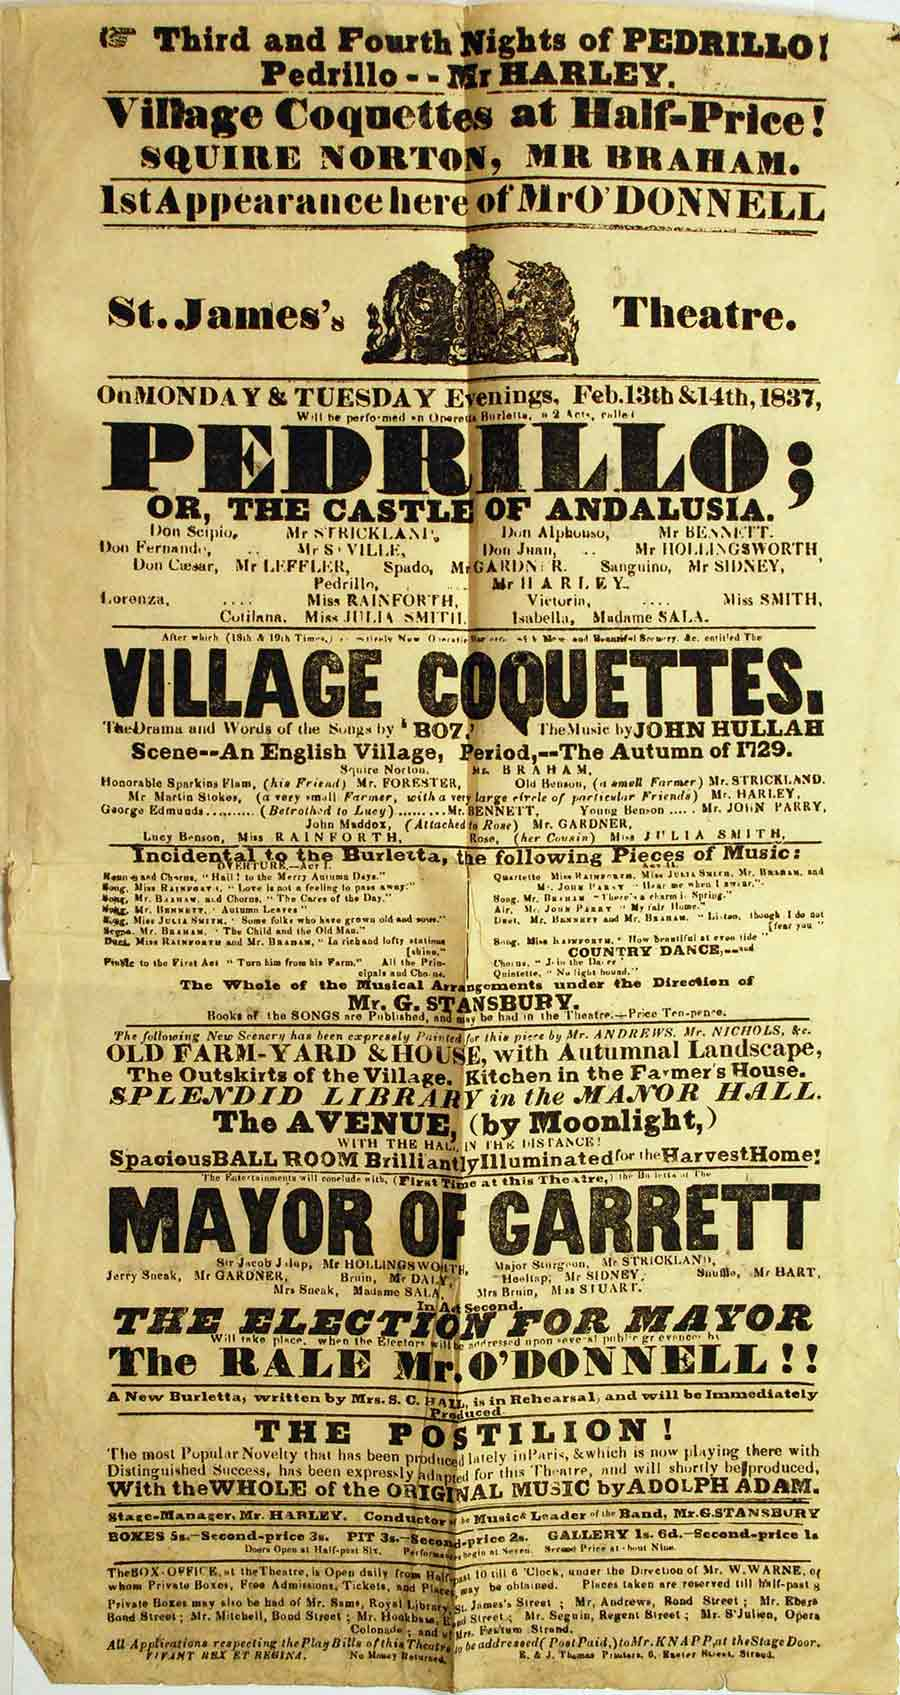 The Village Coquettes: A Comic Opera in Two Acts. London: Richard Bentley, 1836; first edition with playbill tipped in.